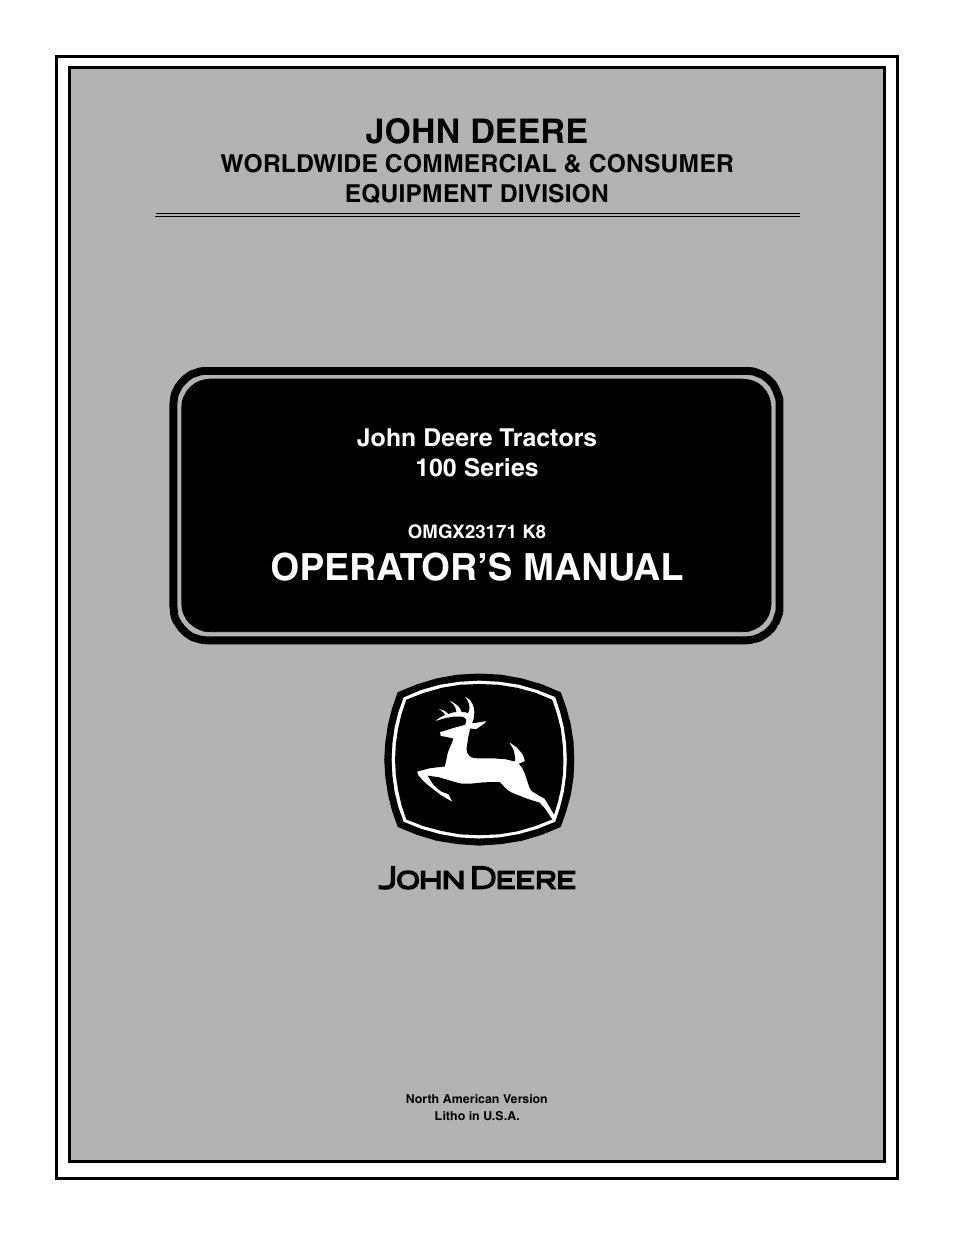 John Deere La105 User Manual 52 Pages Also For Tractors 100. John Deere La105 User Manual 52 Pages Also For Tractors 100 Series La115 La125 La135 La145 La155 La165 La175. John Deere. John Deere La100 Parts Diagram At Scoala.co